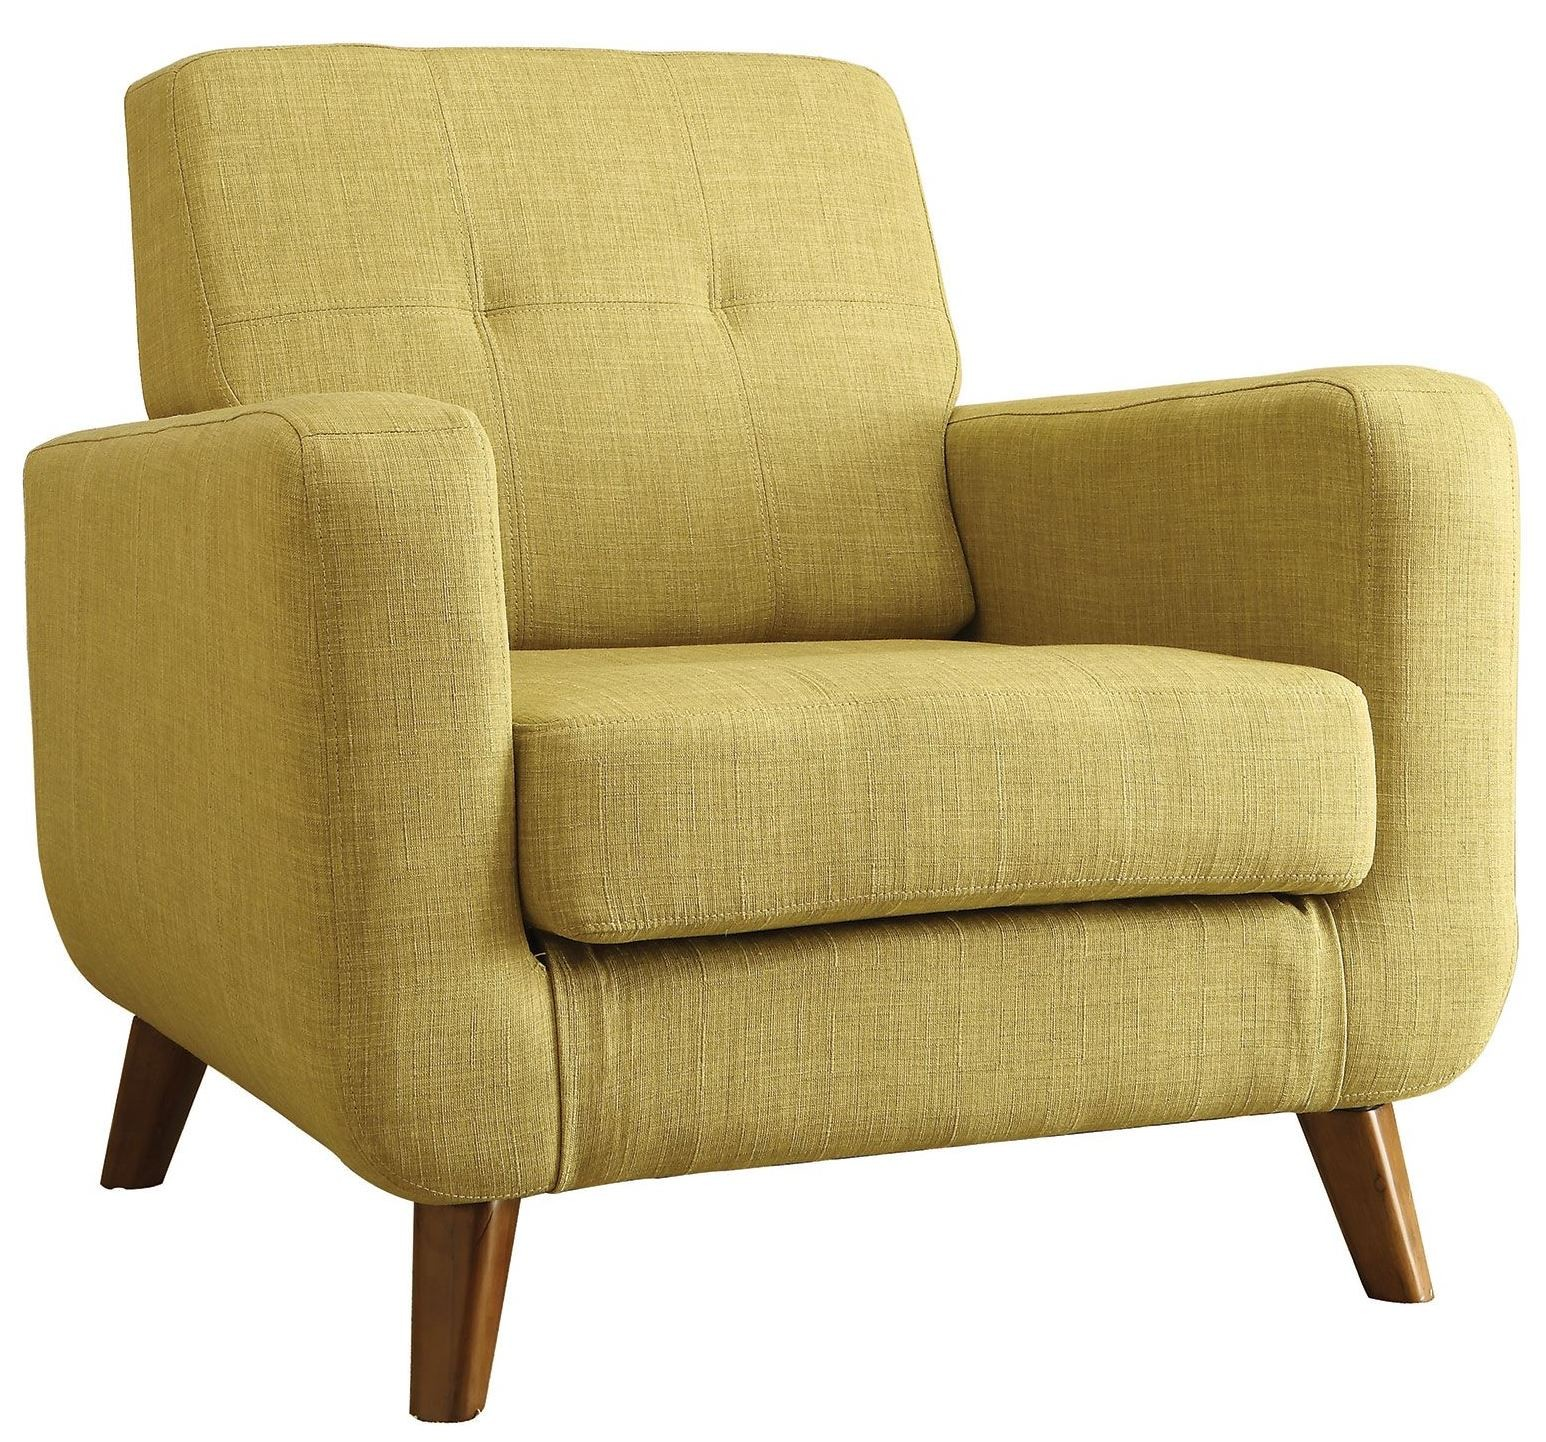 Green Accent Chair With Recliner: Green Accent Chair From Coaster (902482)